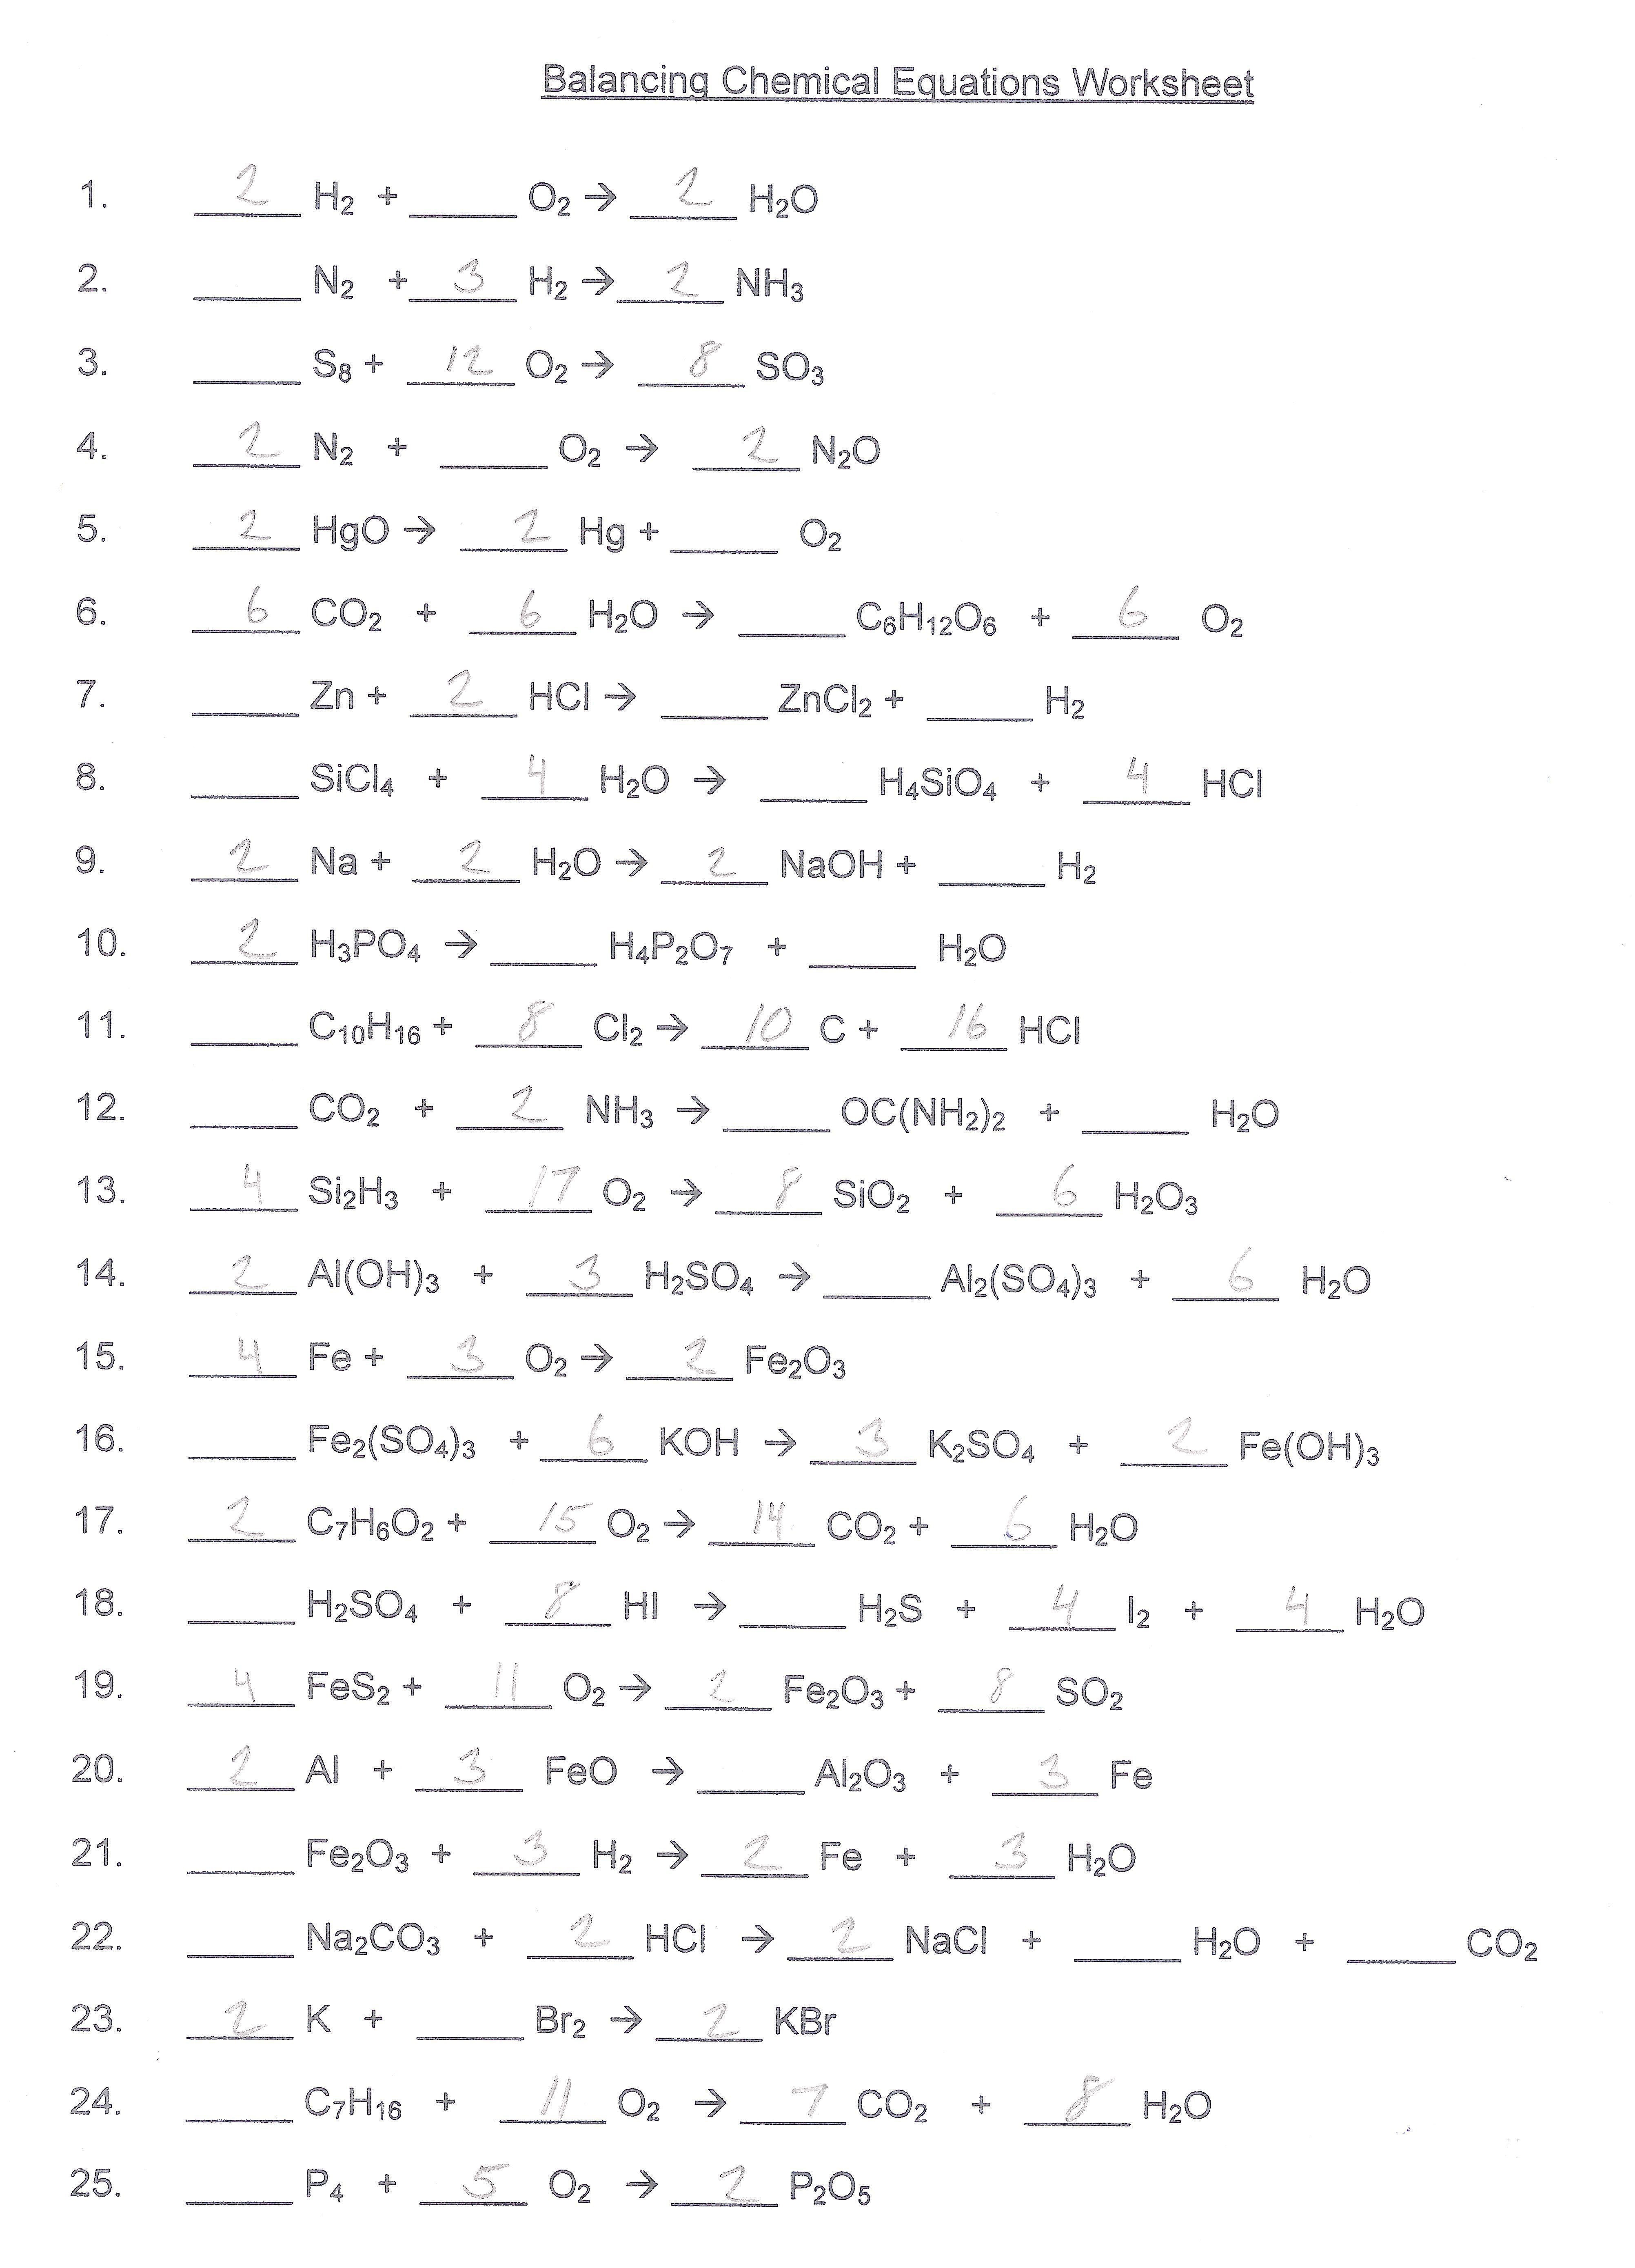 Balancing Chemical Equations Worksheets With Answers